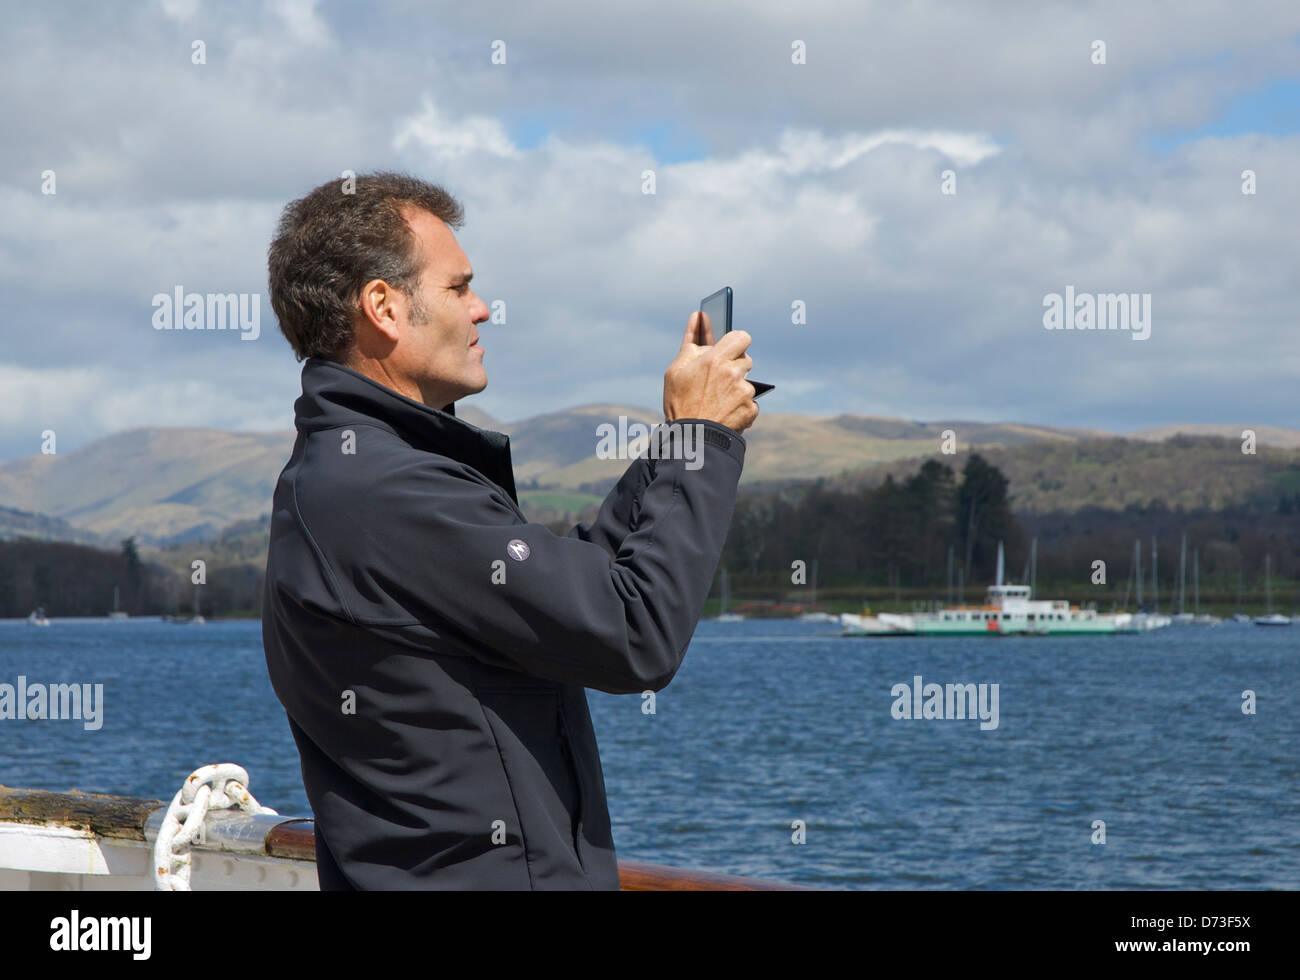 Man taking photographs with his iPad, Lake Windermere, Lake District National Park, Cumbria, England UK - Stock Image